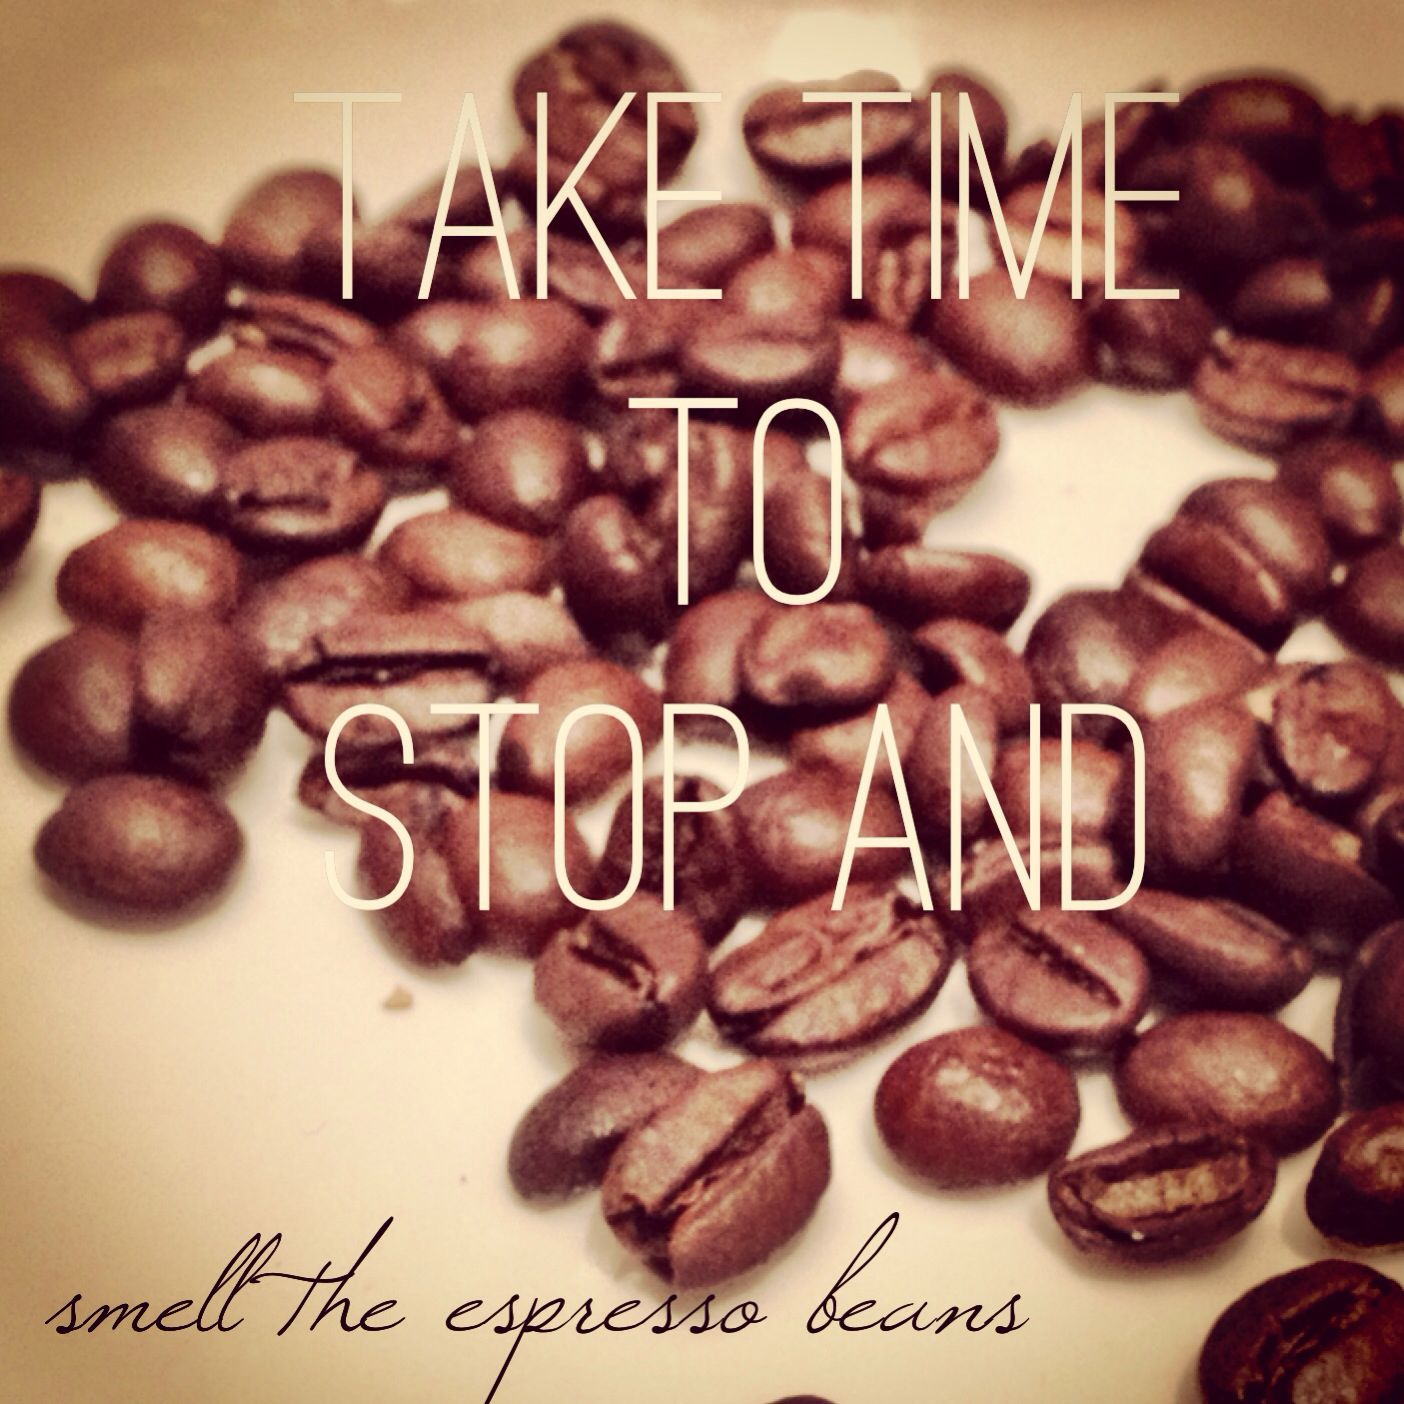 Take Time To Stop And Smell The Espresso Beans Quote Wine Recipes Coffee Klatch Espresso Beans